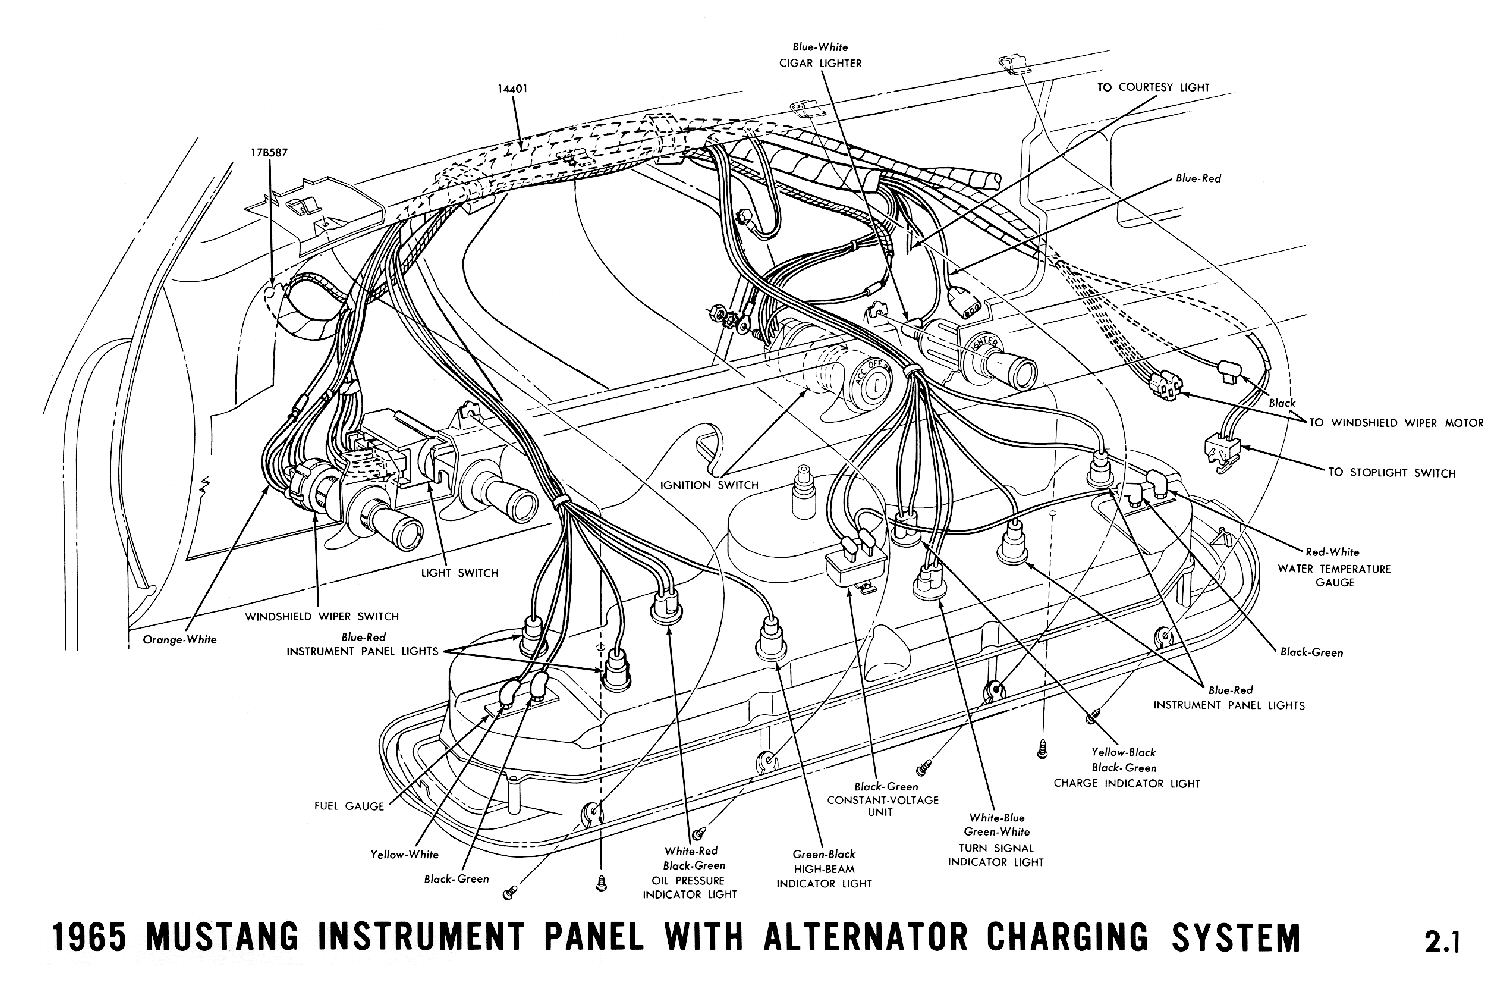 1965a 1965 mustang wiring diagram 1965 lincoln wiring diagram \u2022 wiring 1965 mustang wiring diagram free at honlapkeszites.co